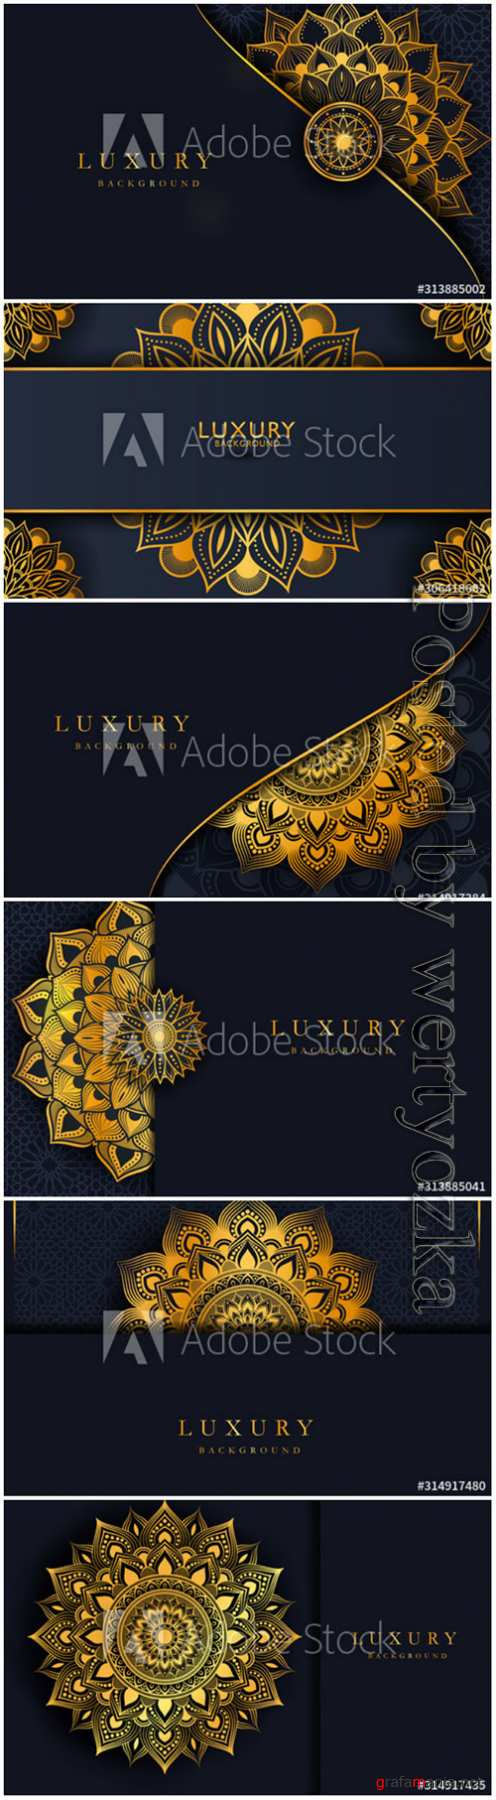 Luxury background with gold islamic arabesque mandala ornament